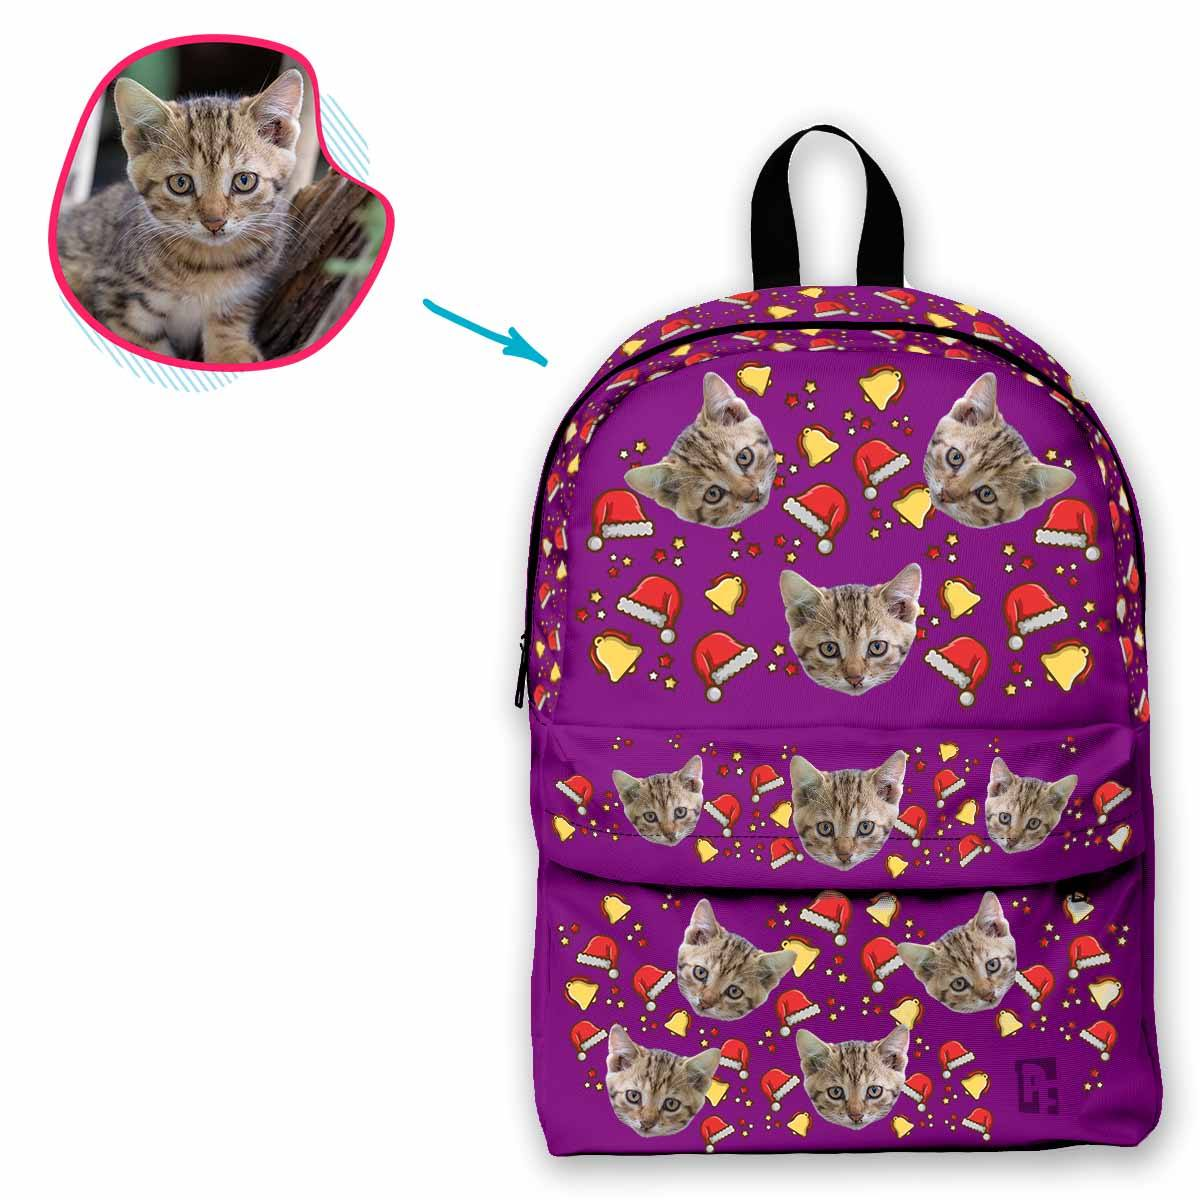 purple Santa's Hat classic backpack personalized with photo of face printed on it